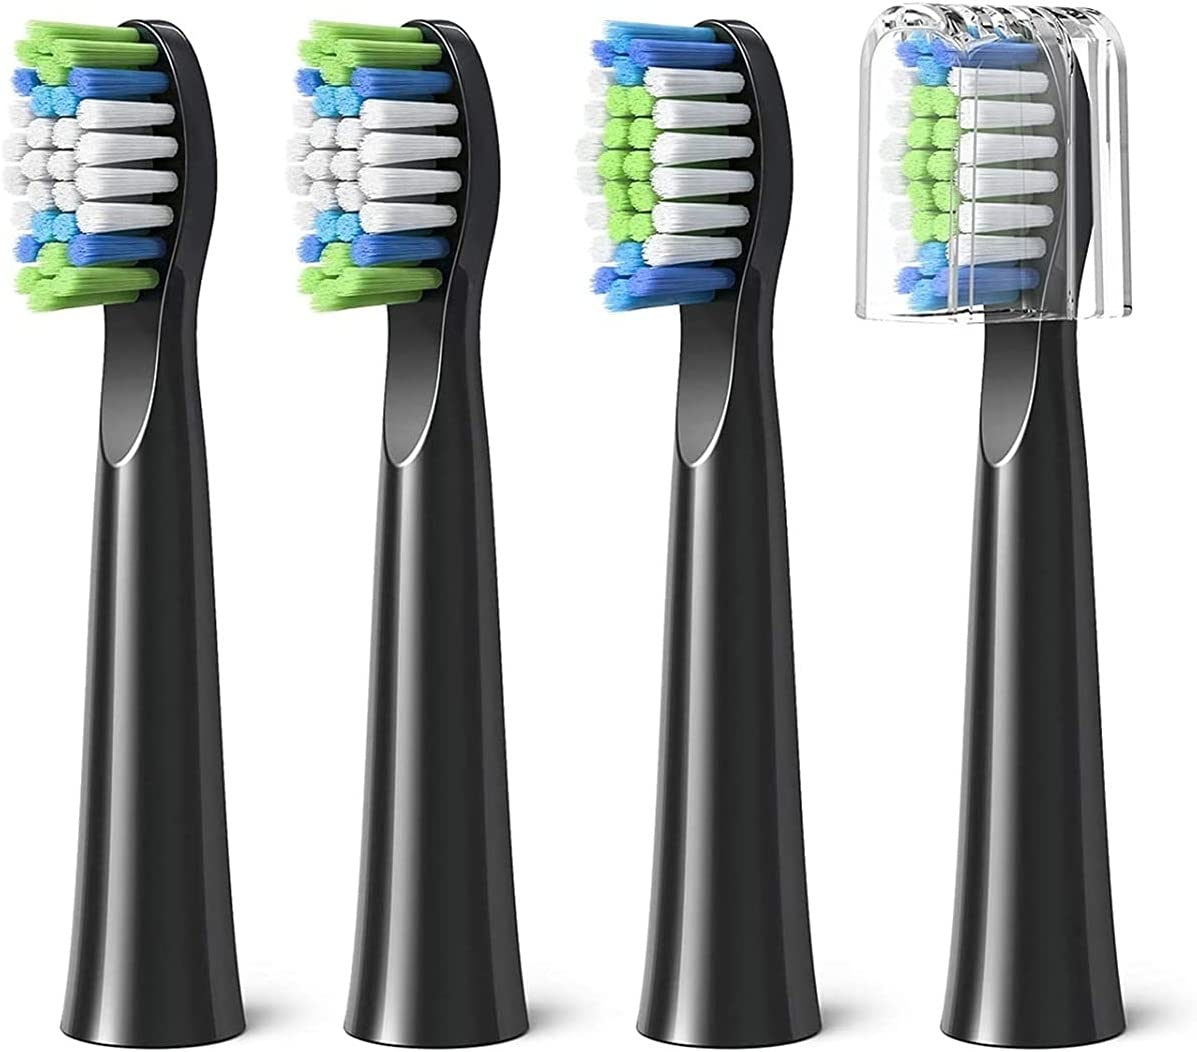 LIANGMEI Qingqing Store Toothbrush Toothbrushes New product type Heads R Electric Spasm price